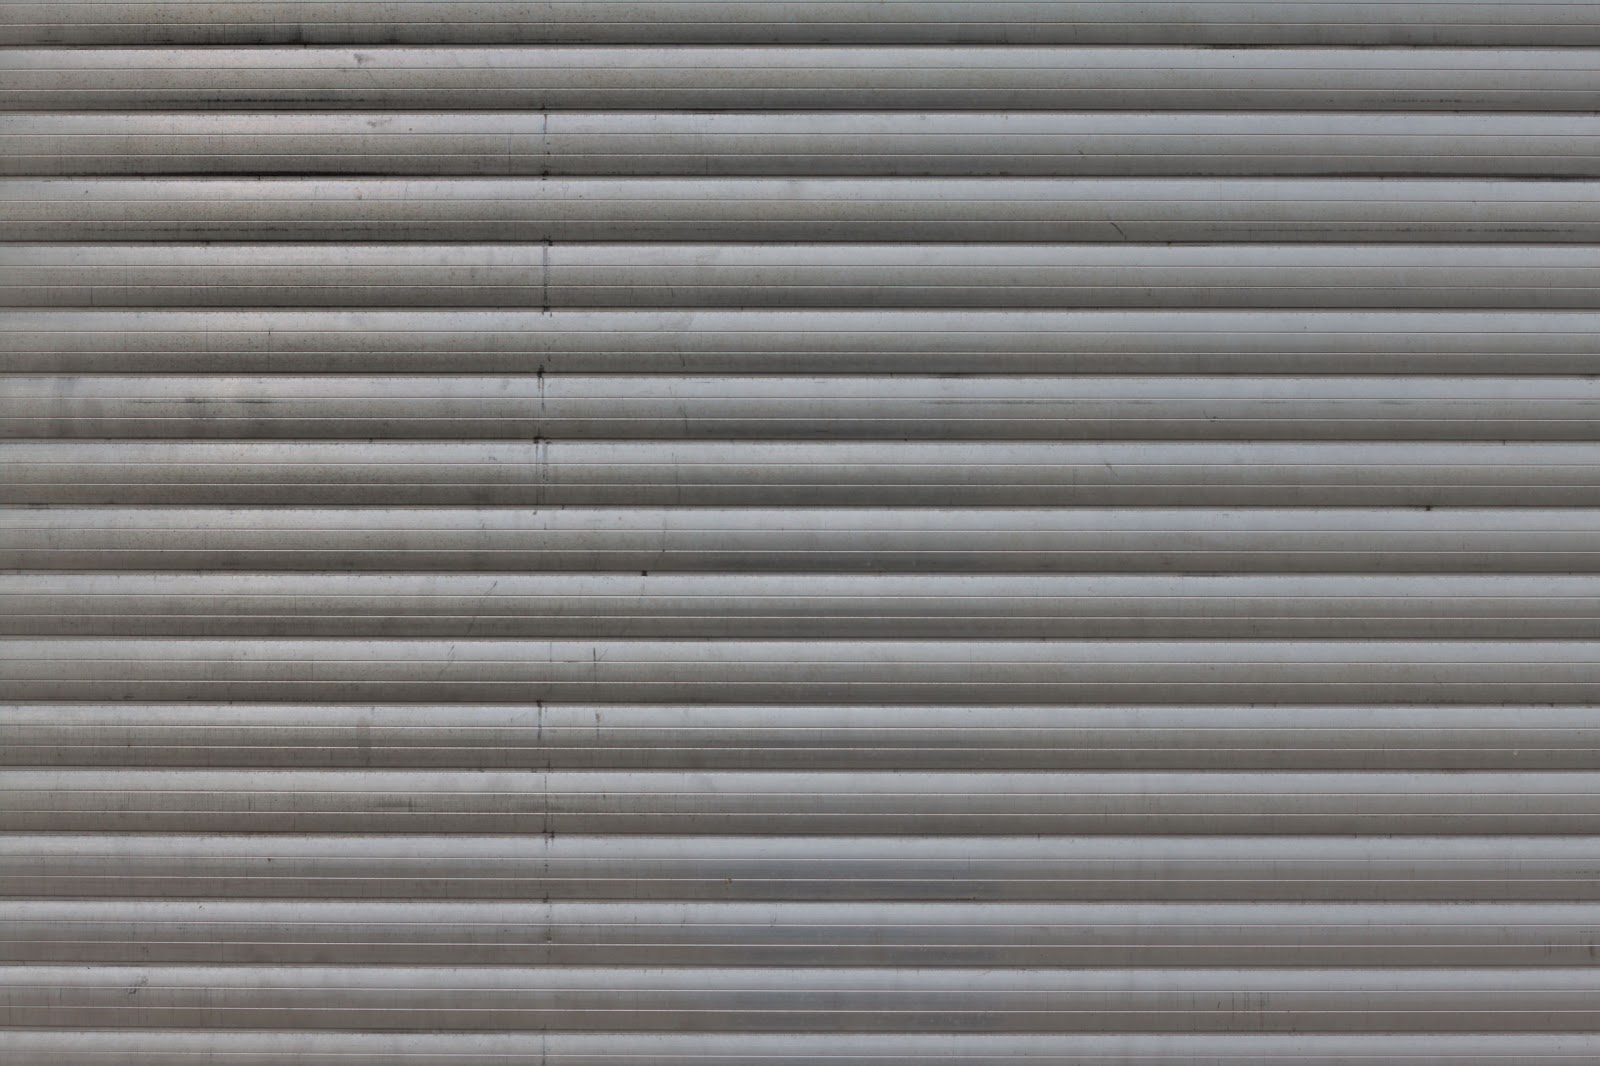 Metal aluminium tin shutter door texture  sc 1 st  Seamless Pixels & High Resolution Seamless Textures: Metal aluminium tin shutter door ...